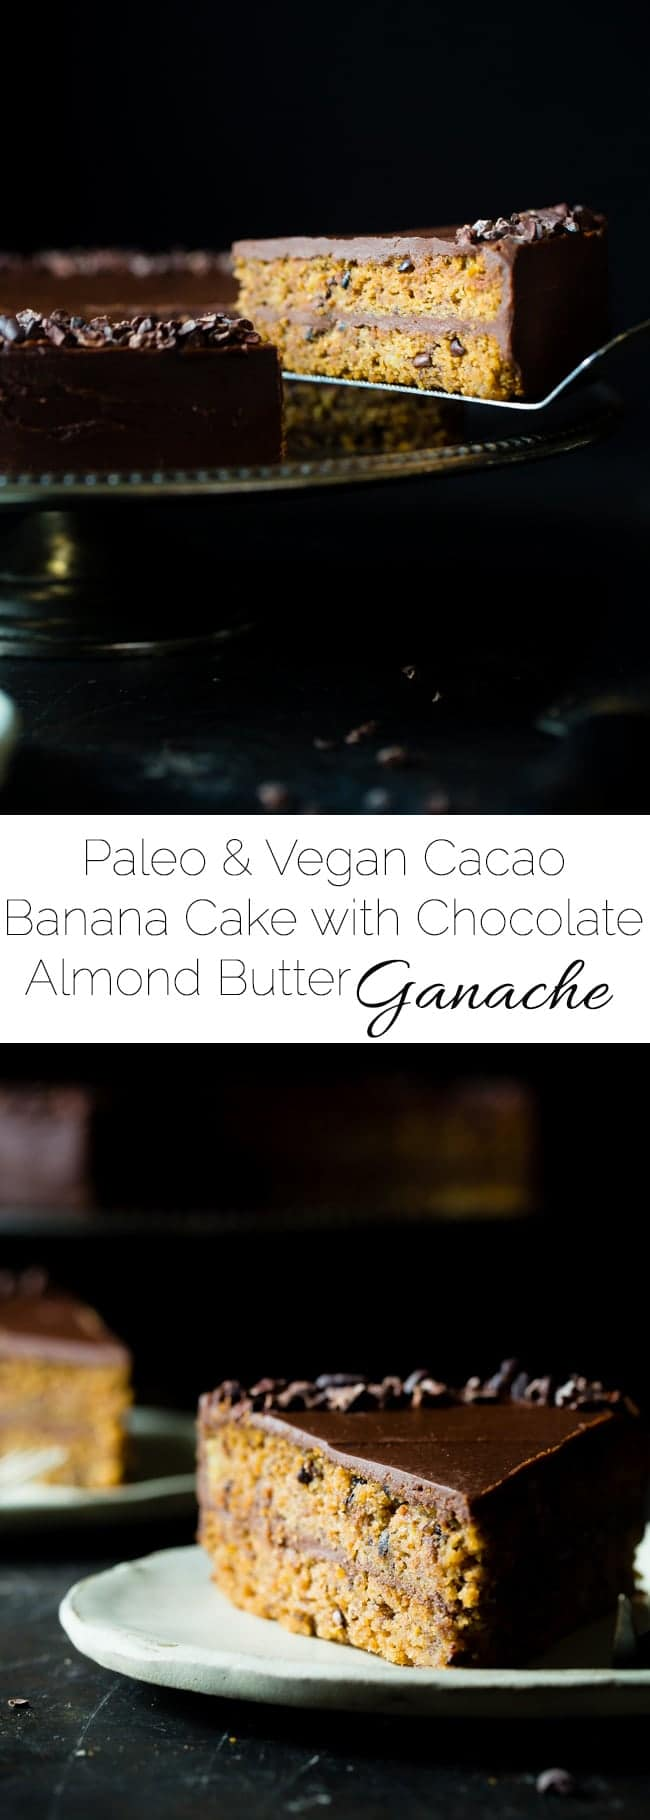 Paleo Cacao Banana Bread Cake - This show stopping cake has a rich, creamy almond butter chocolate ganache! You'll never know it's a healthier, paleo and vegan friendly dessert! | Foodfaithfitness.com | @FoodFaithFit